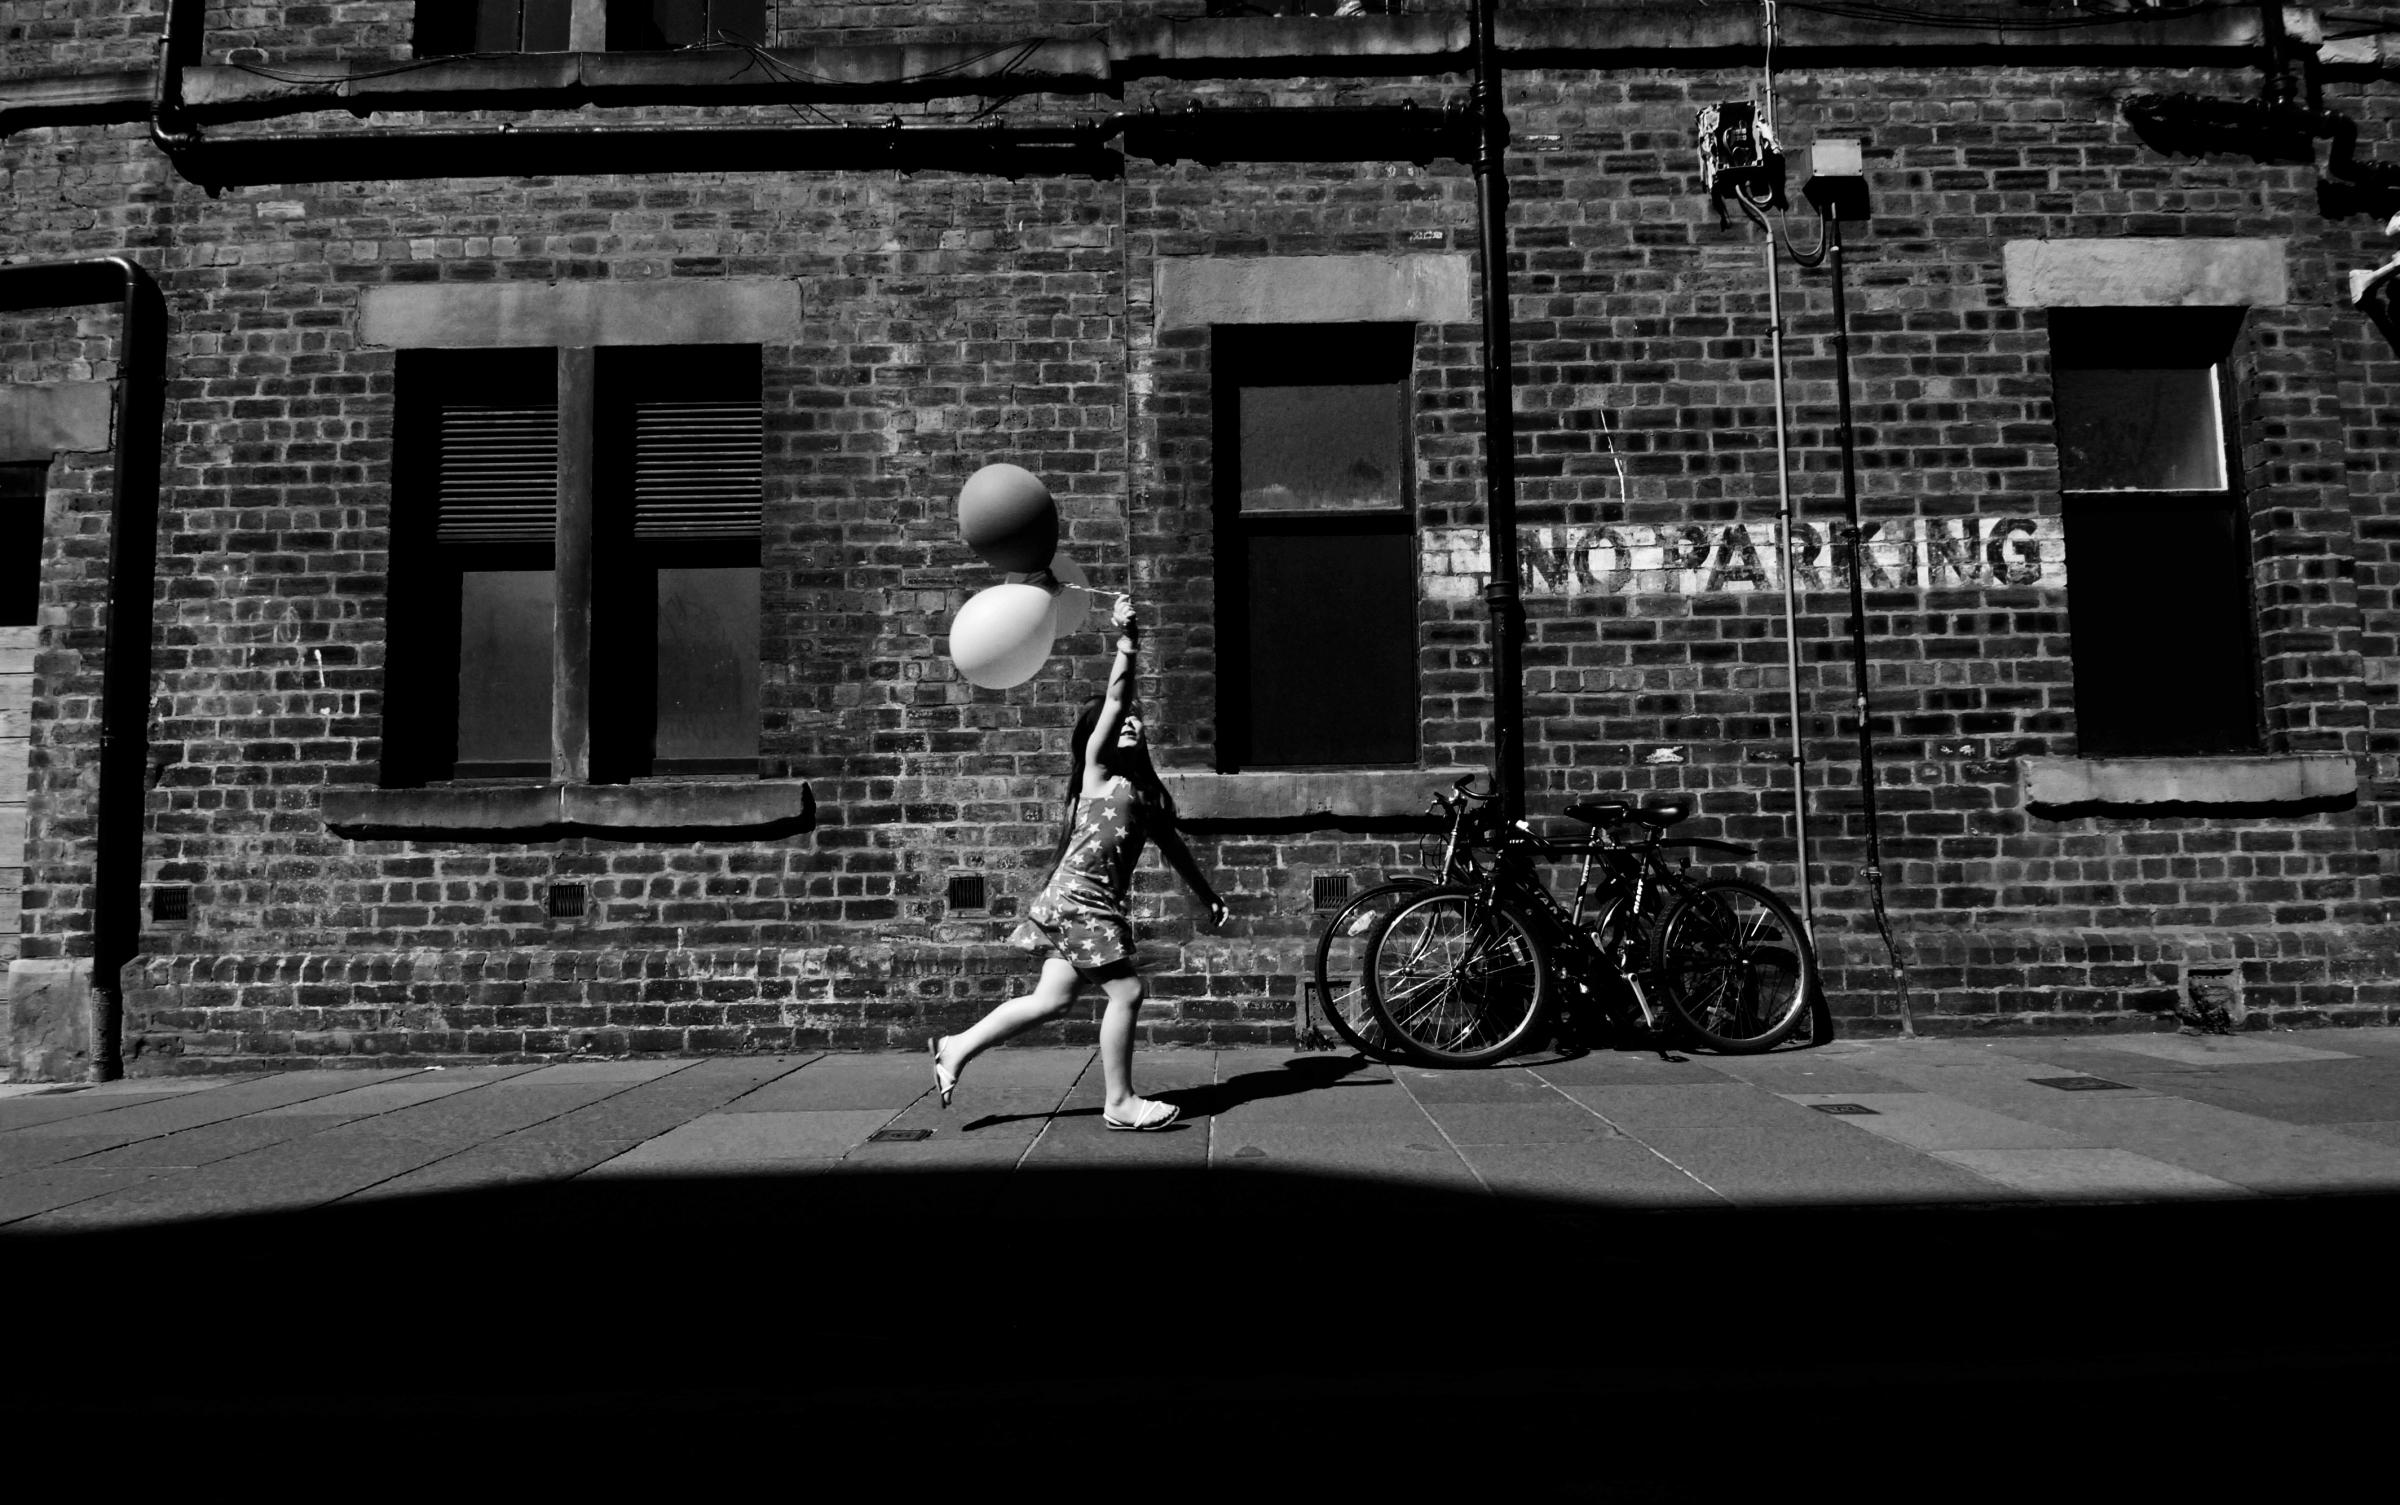 Glasgow Eye: Brian Anderson's black and white street photographs capture the city in all its colours